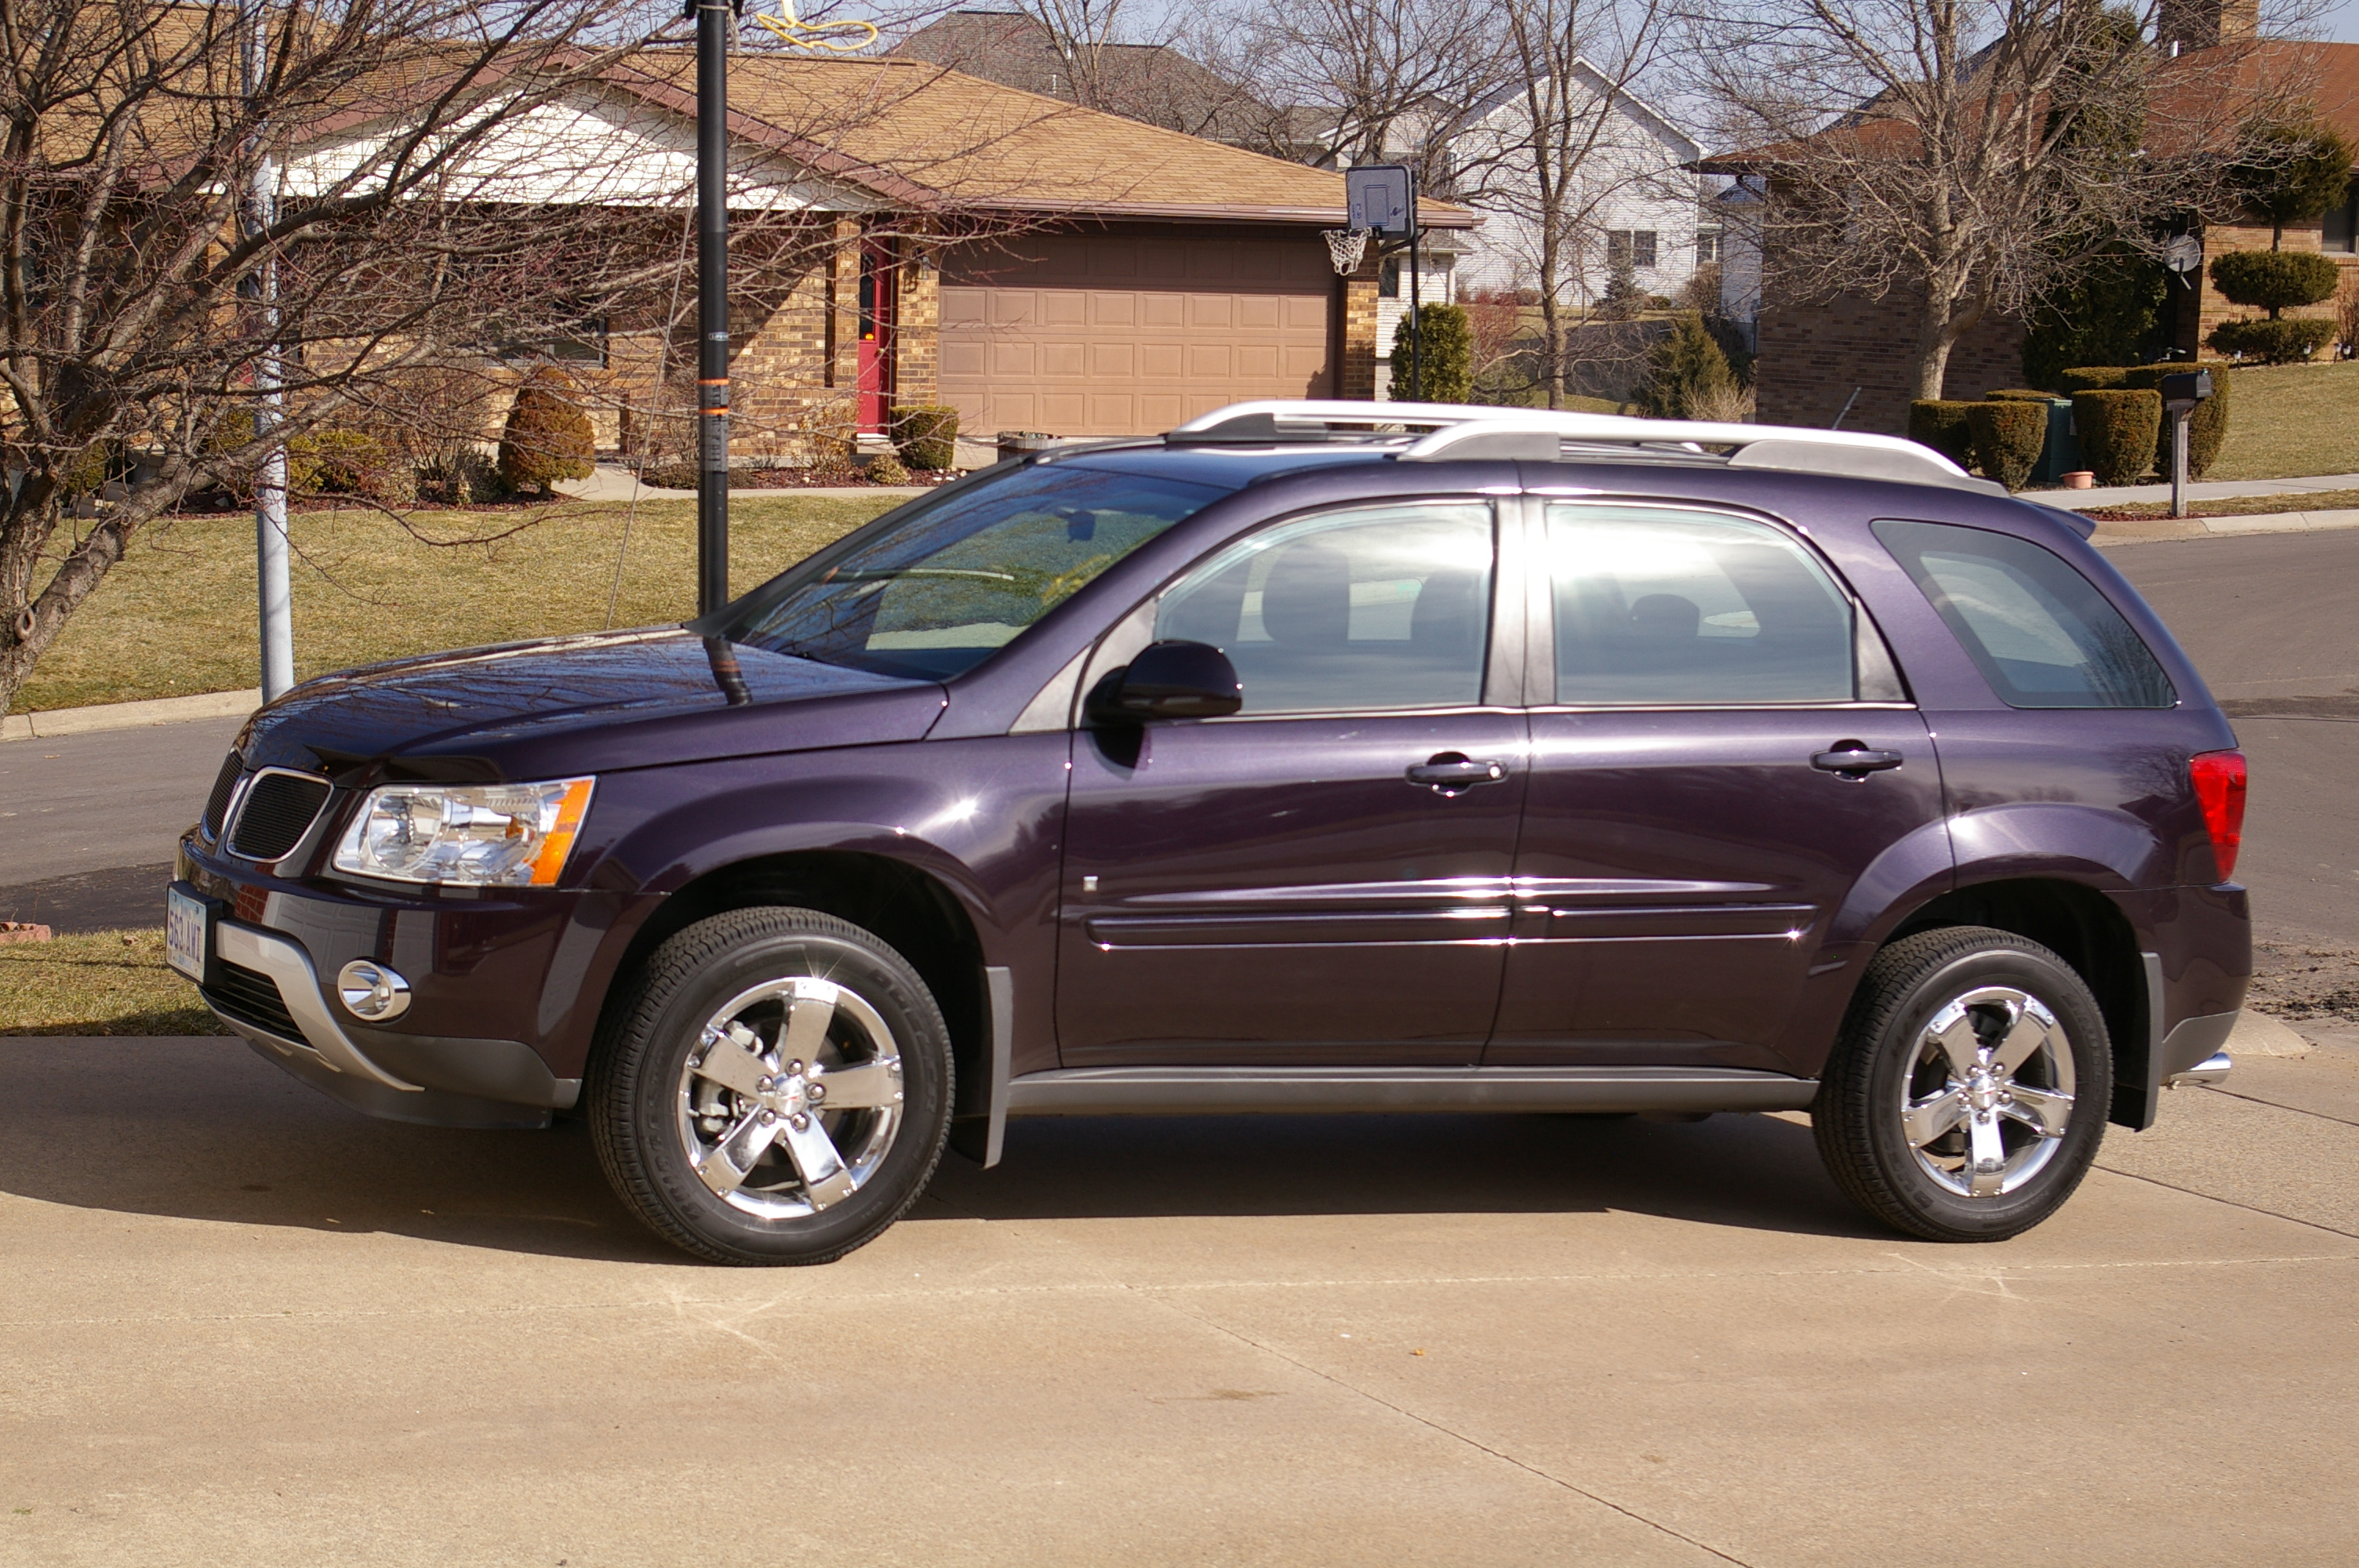 Pontiac Torrent #7